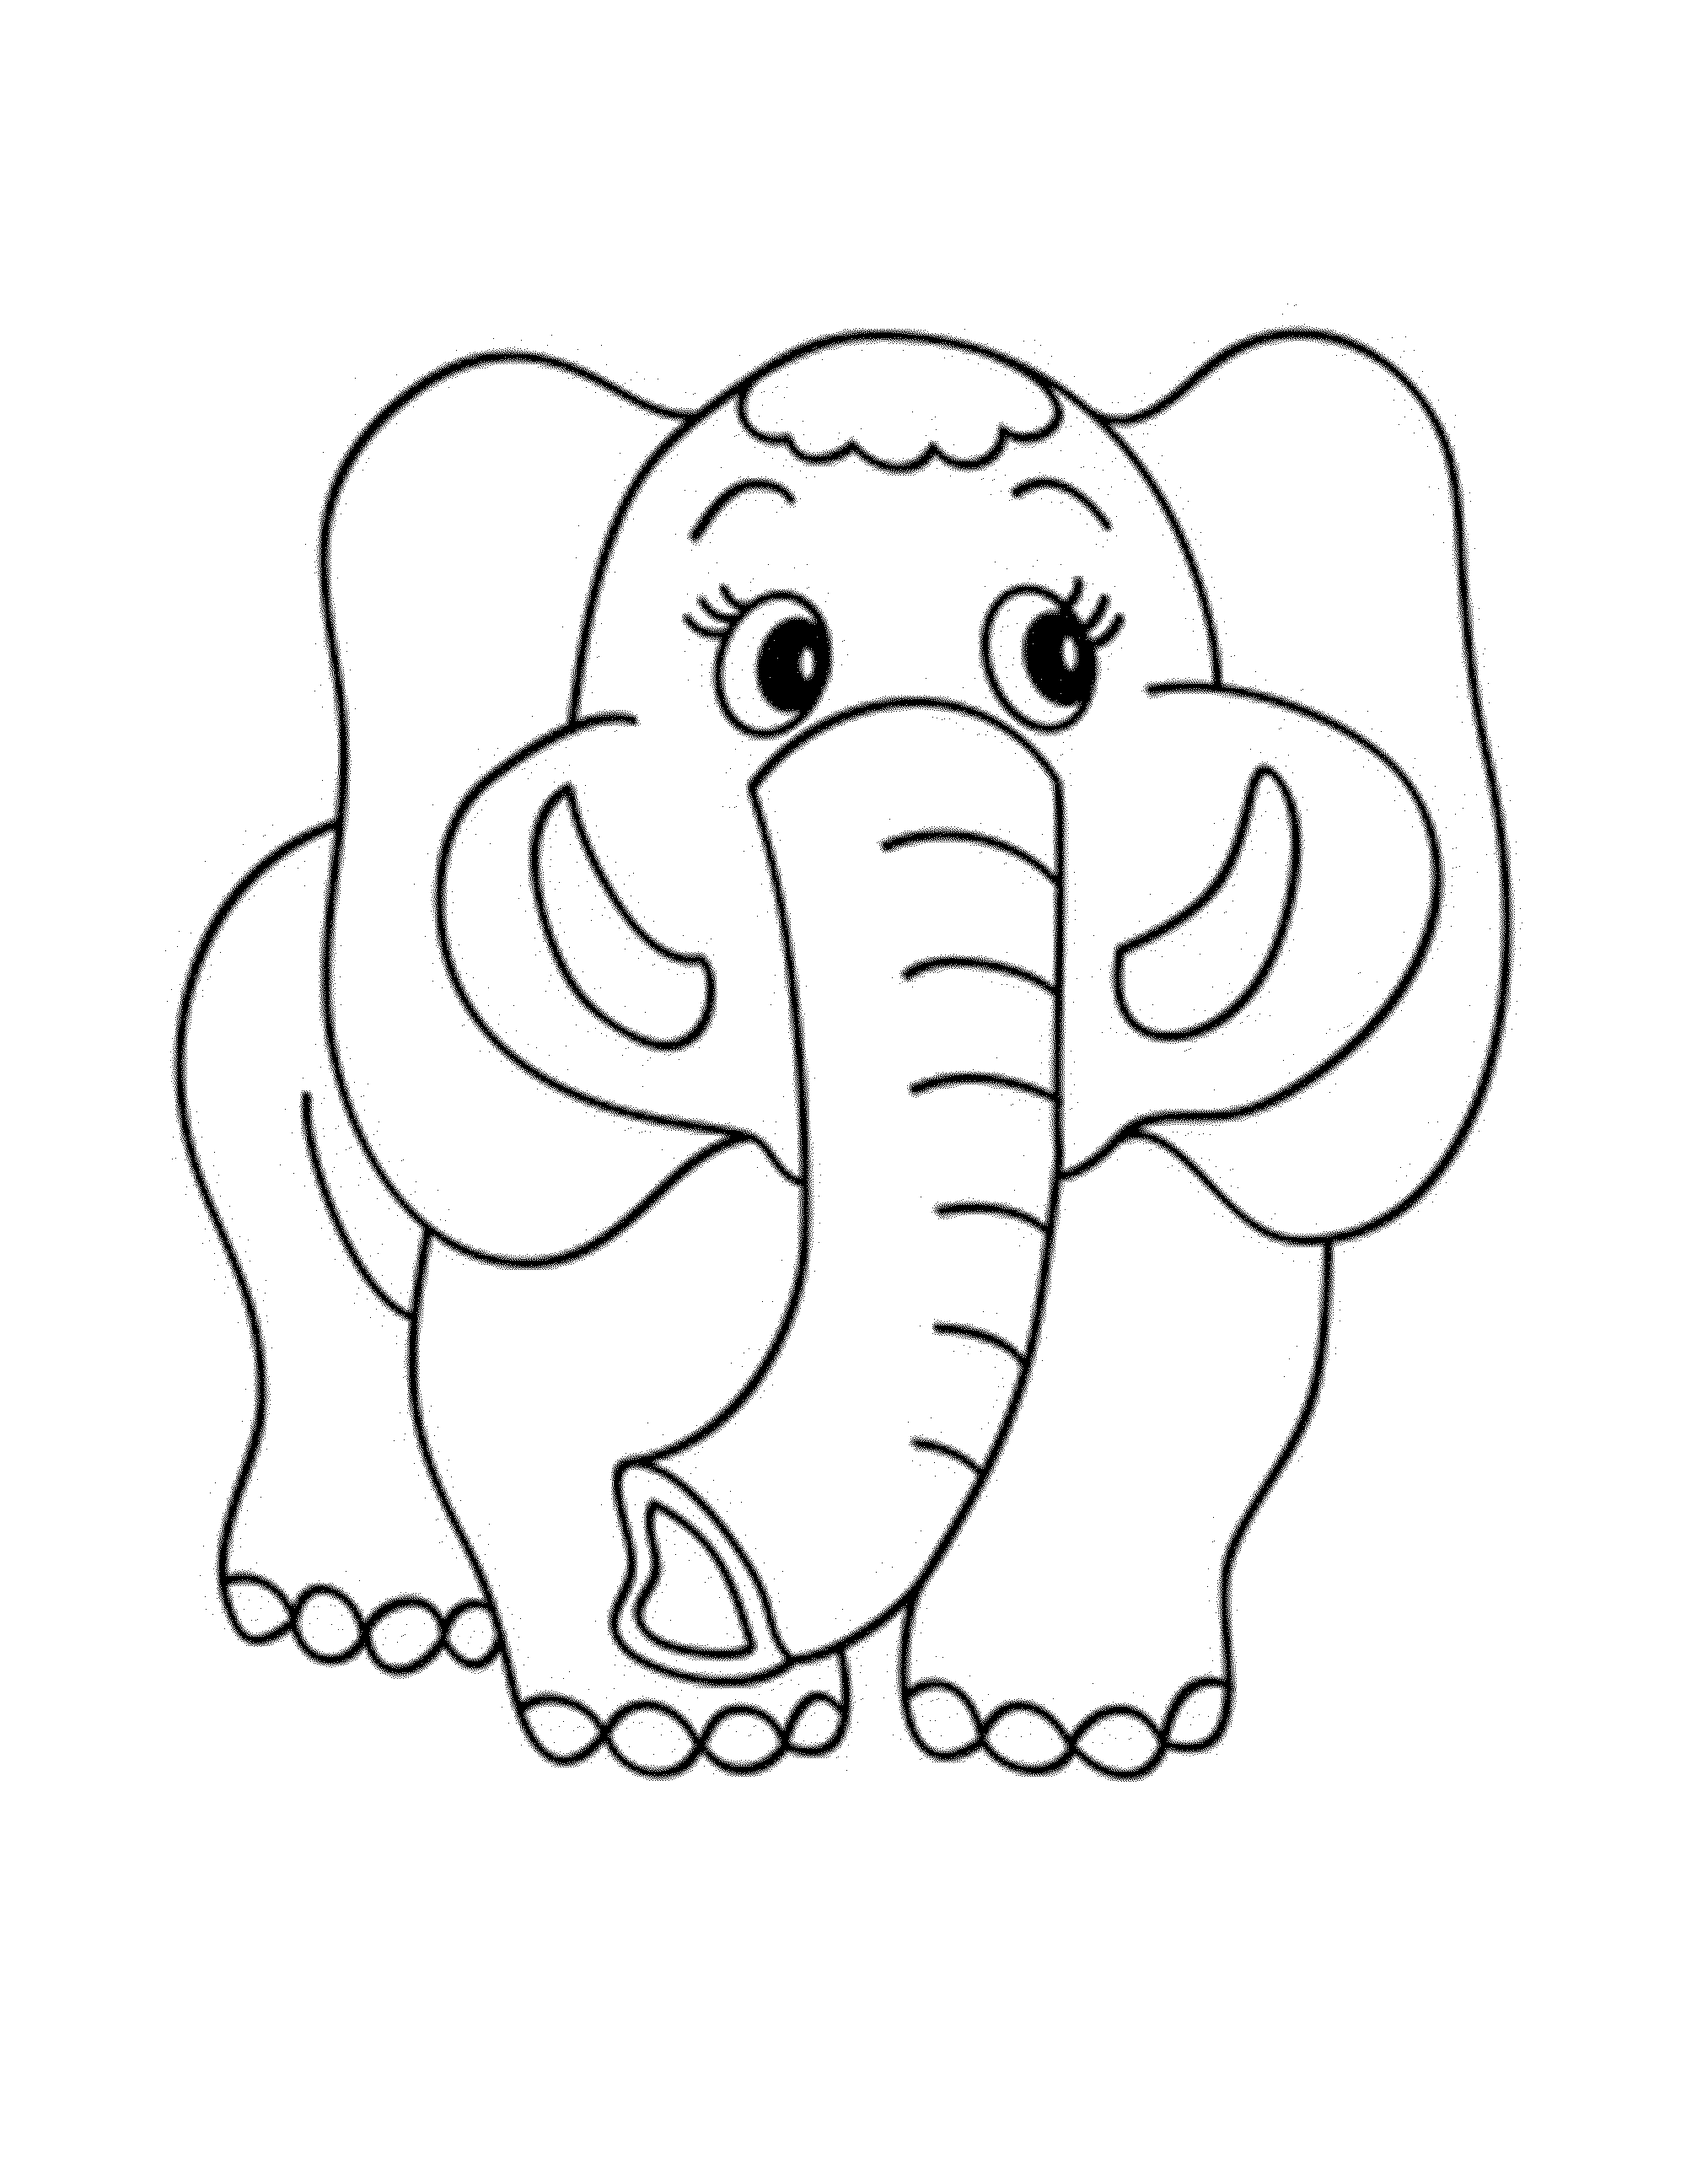 printable elephant coloring pages print download teaching kids through elephant coloring pages printable coloring elephant